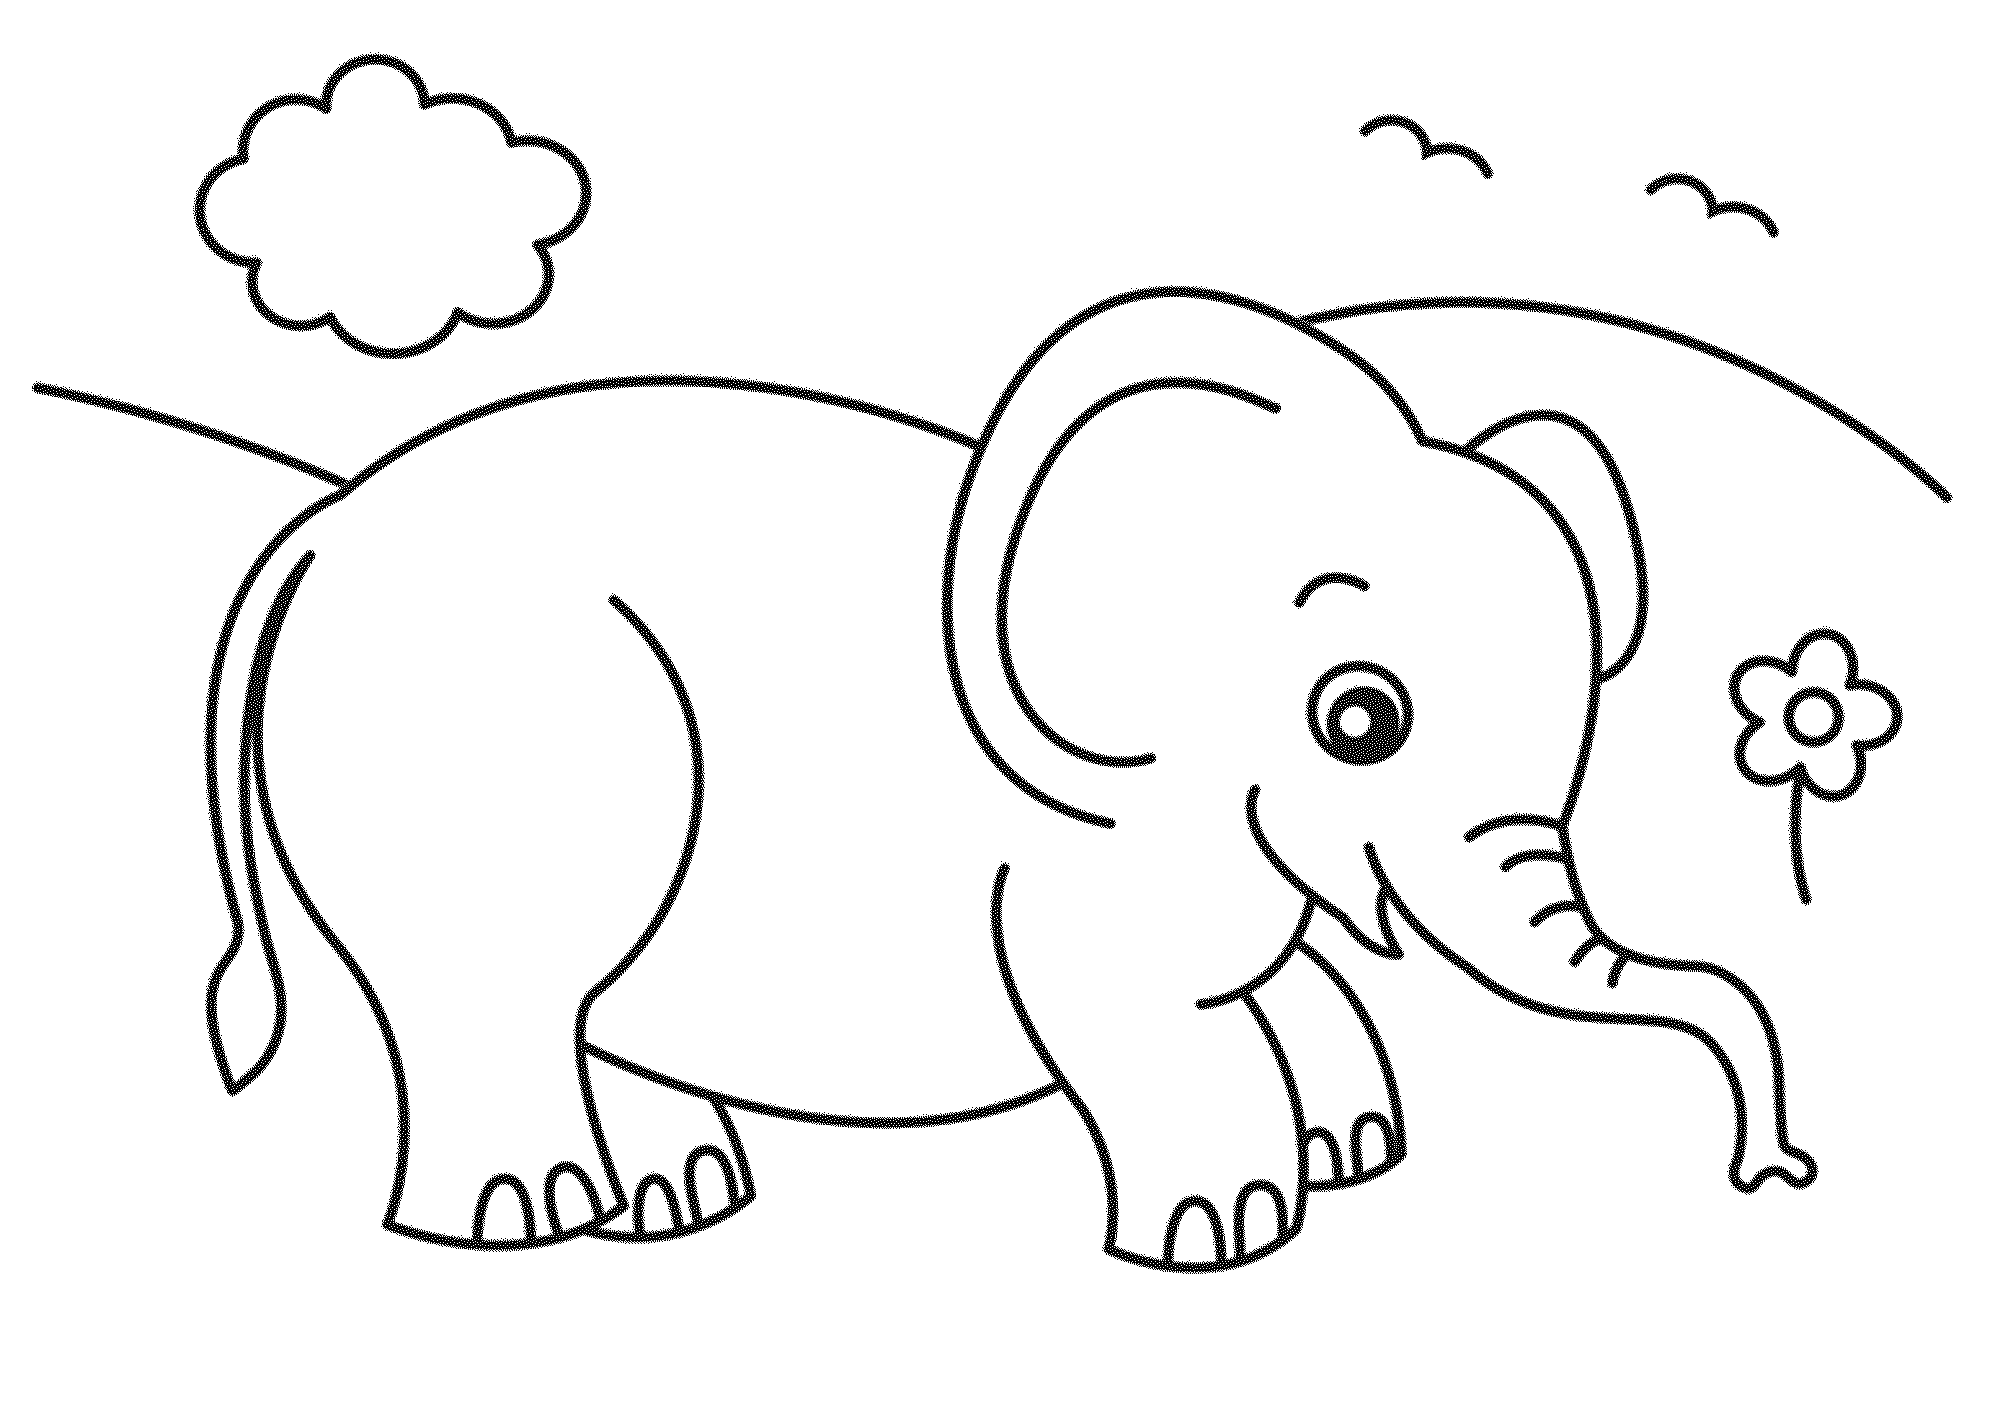 elephants coloring pages elephant coloring pages for kids printable for free elephants coloring pages